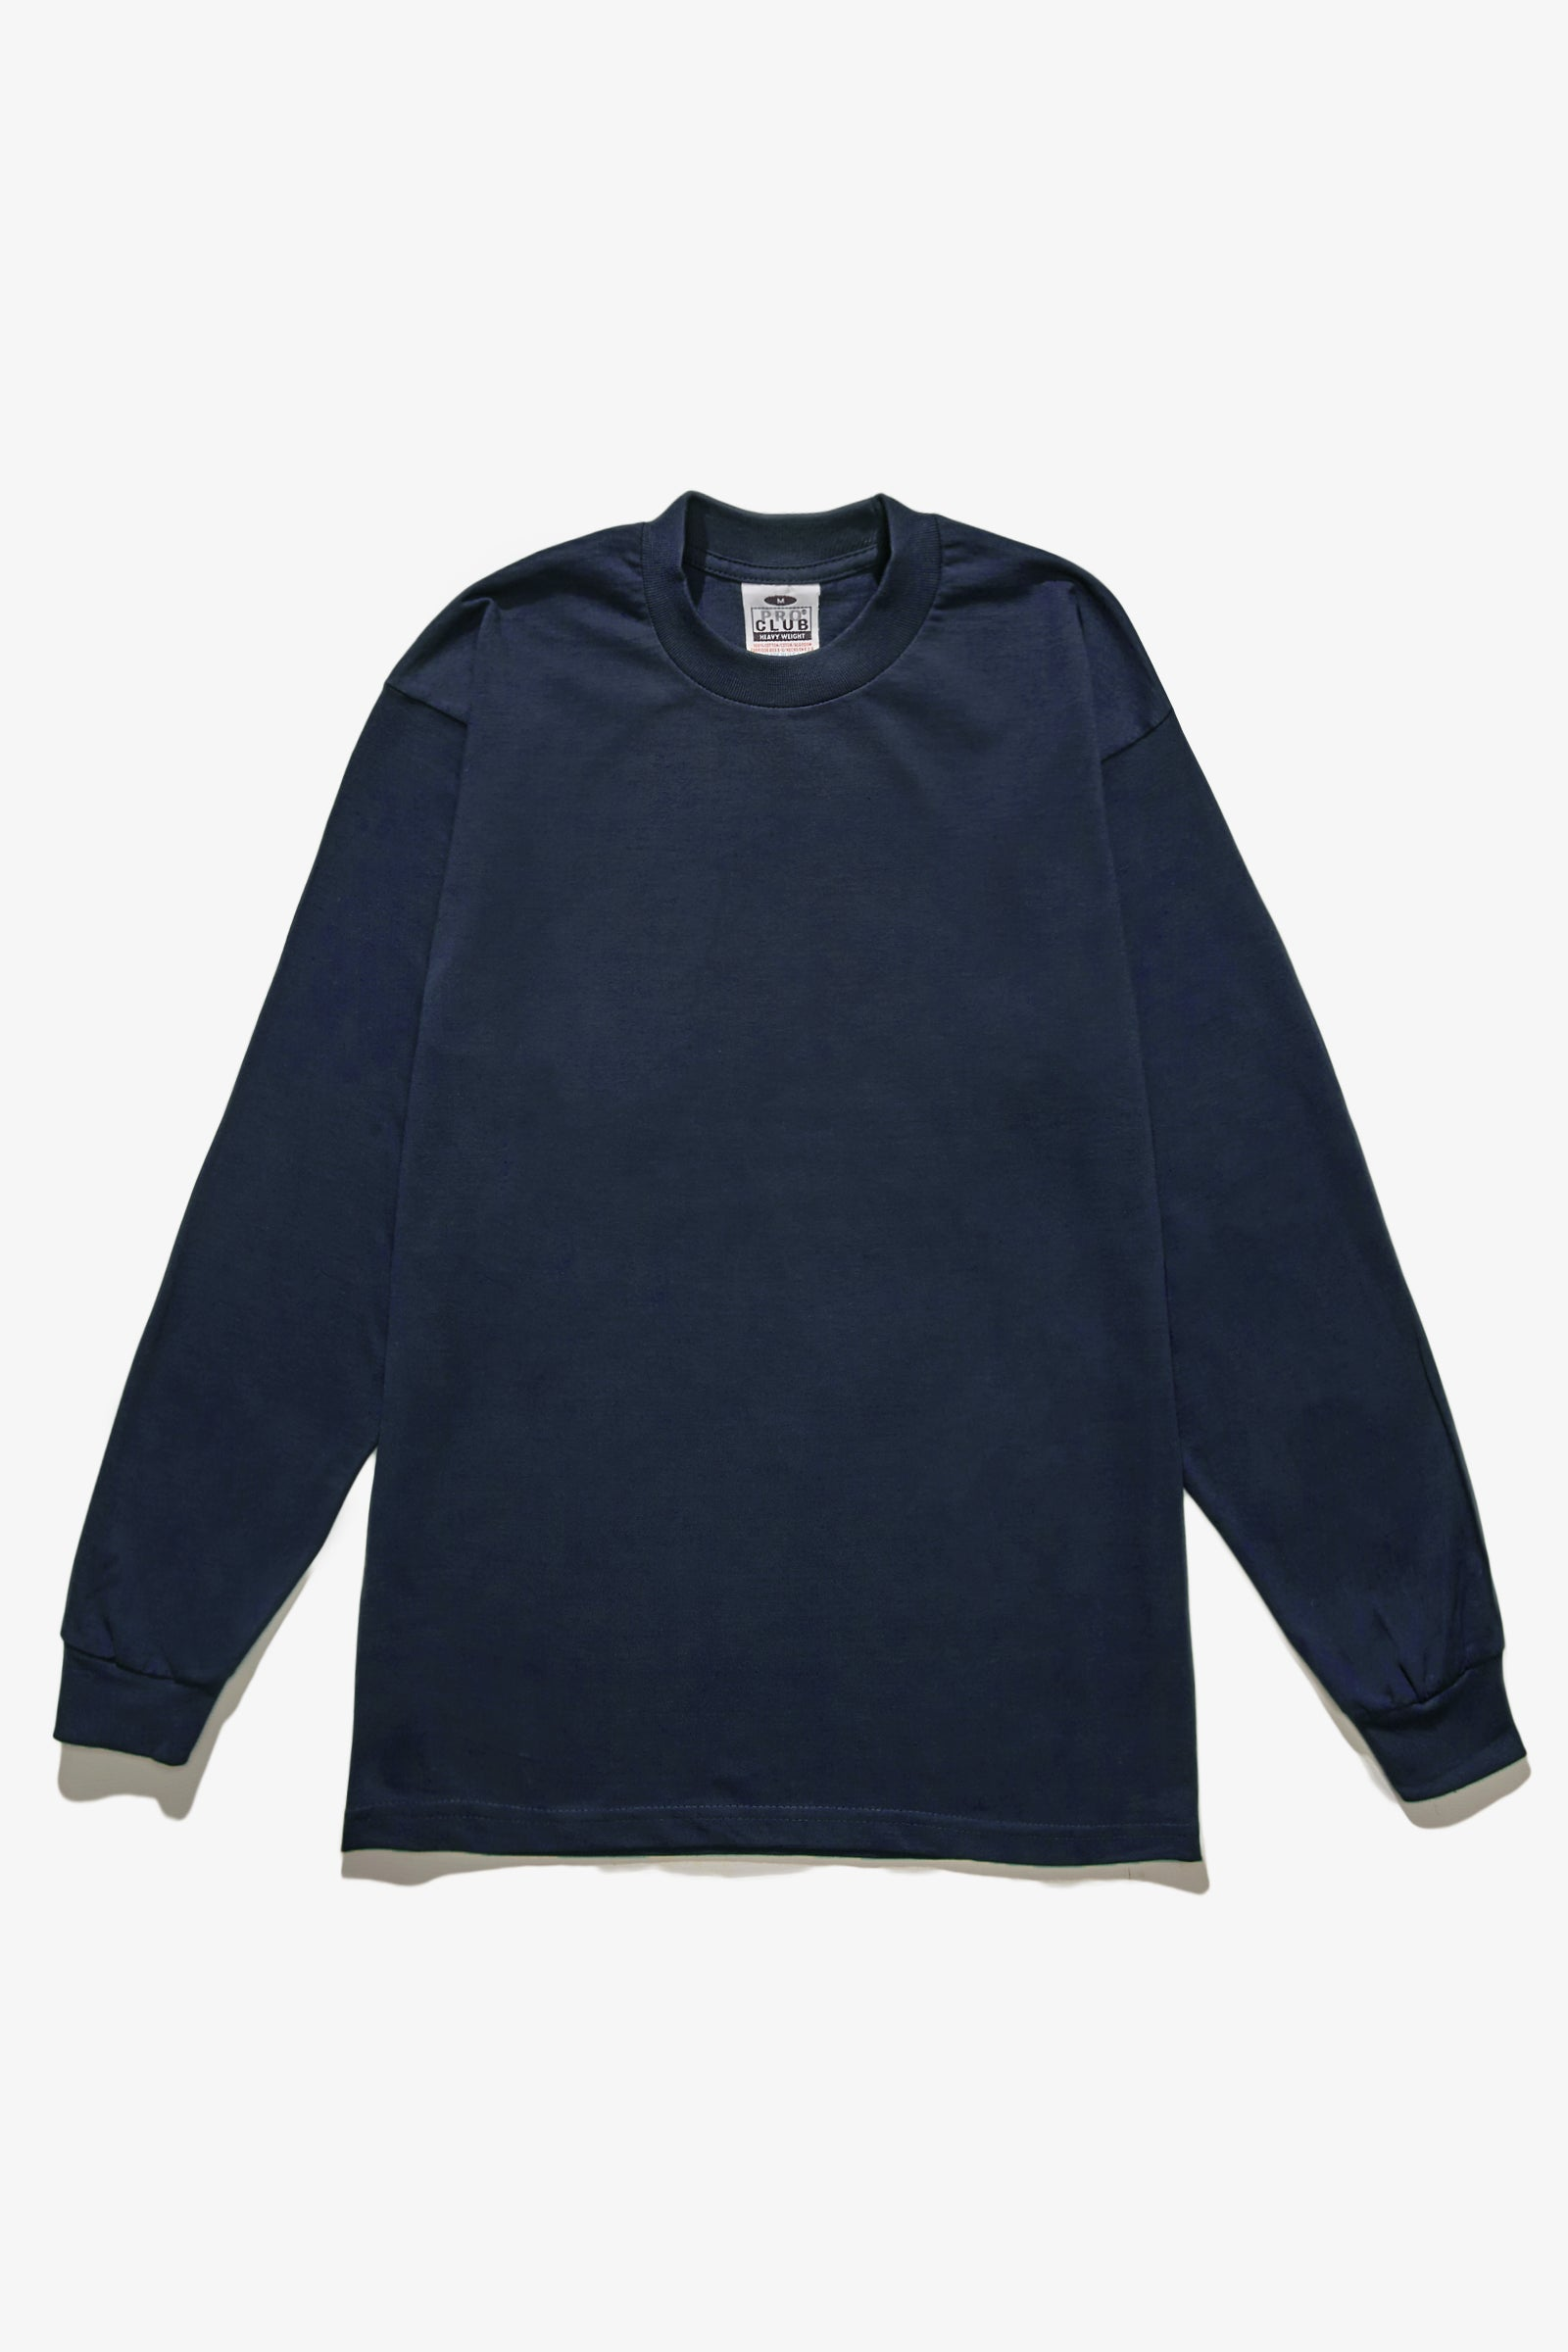 Pro Club - Heavyweight Long Sleeve T-Shirt - Navy